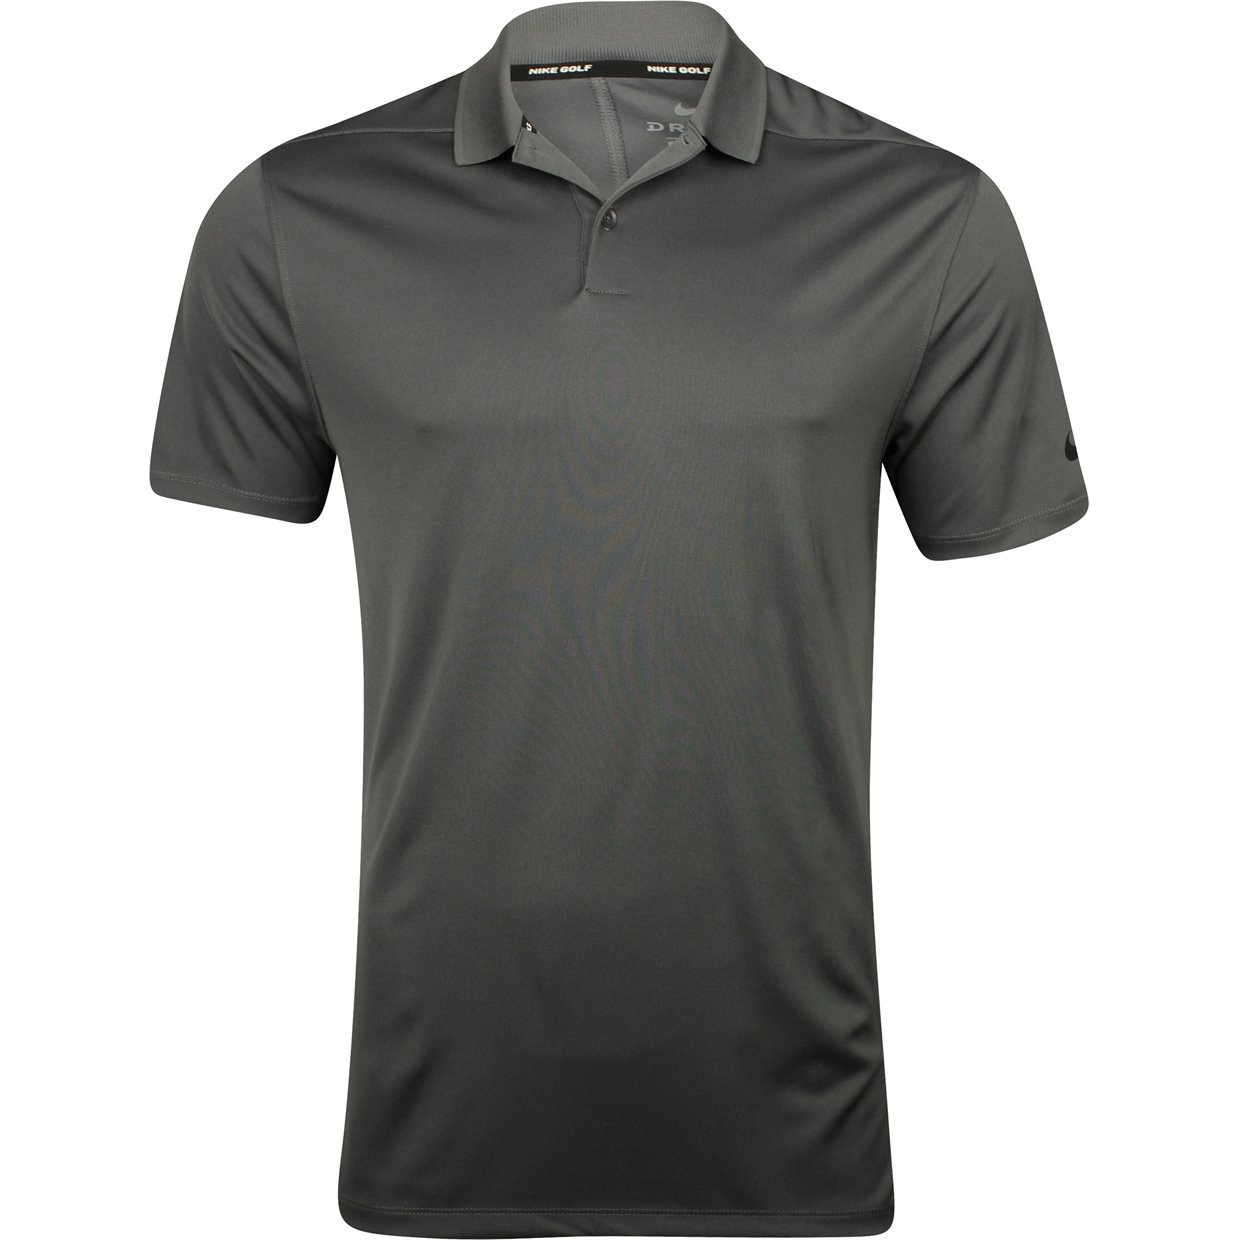 5d3fe07731def Nike Dry Victory Solid Golf Shirt Apparel at GlobalGolf.com